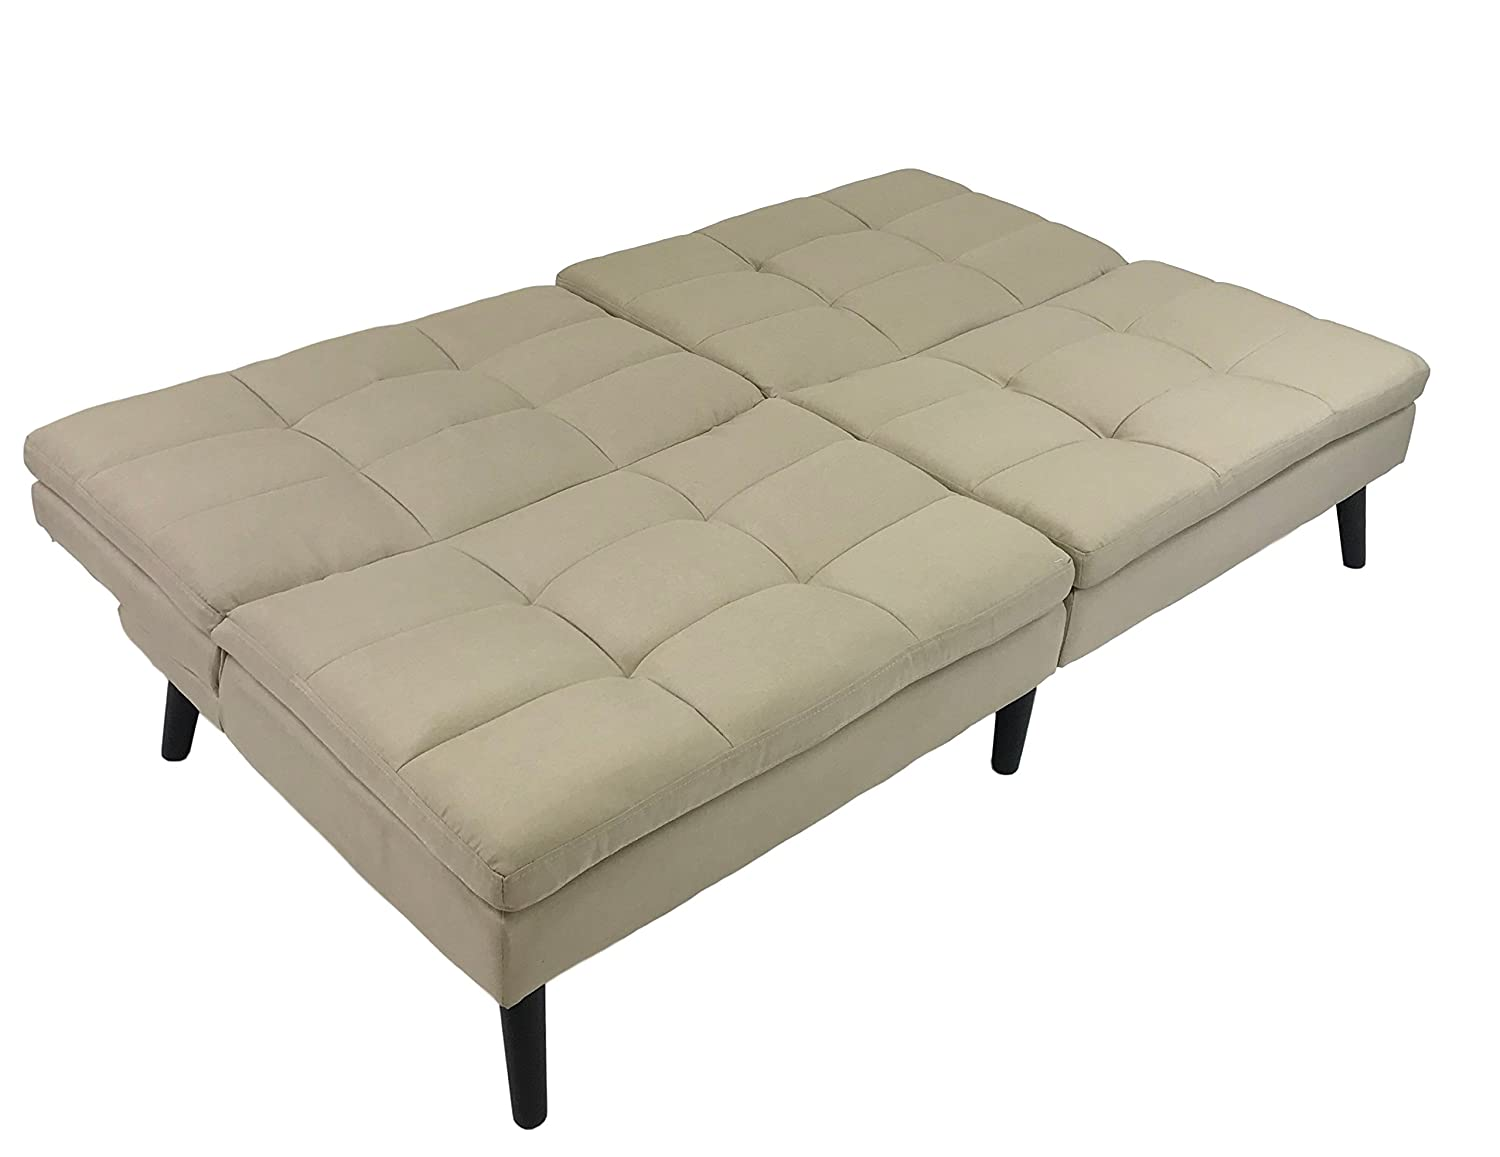 ViscoLogic Windsor Split Back Convertible Futon Sofa Bed